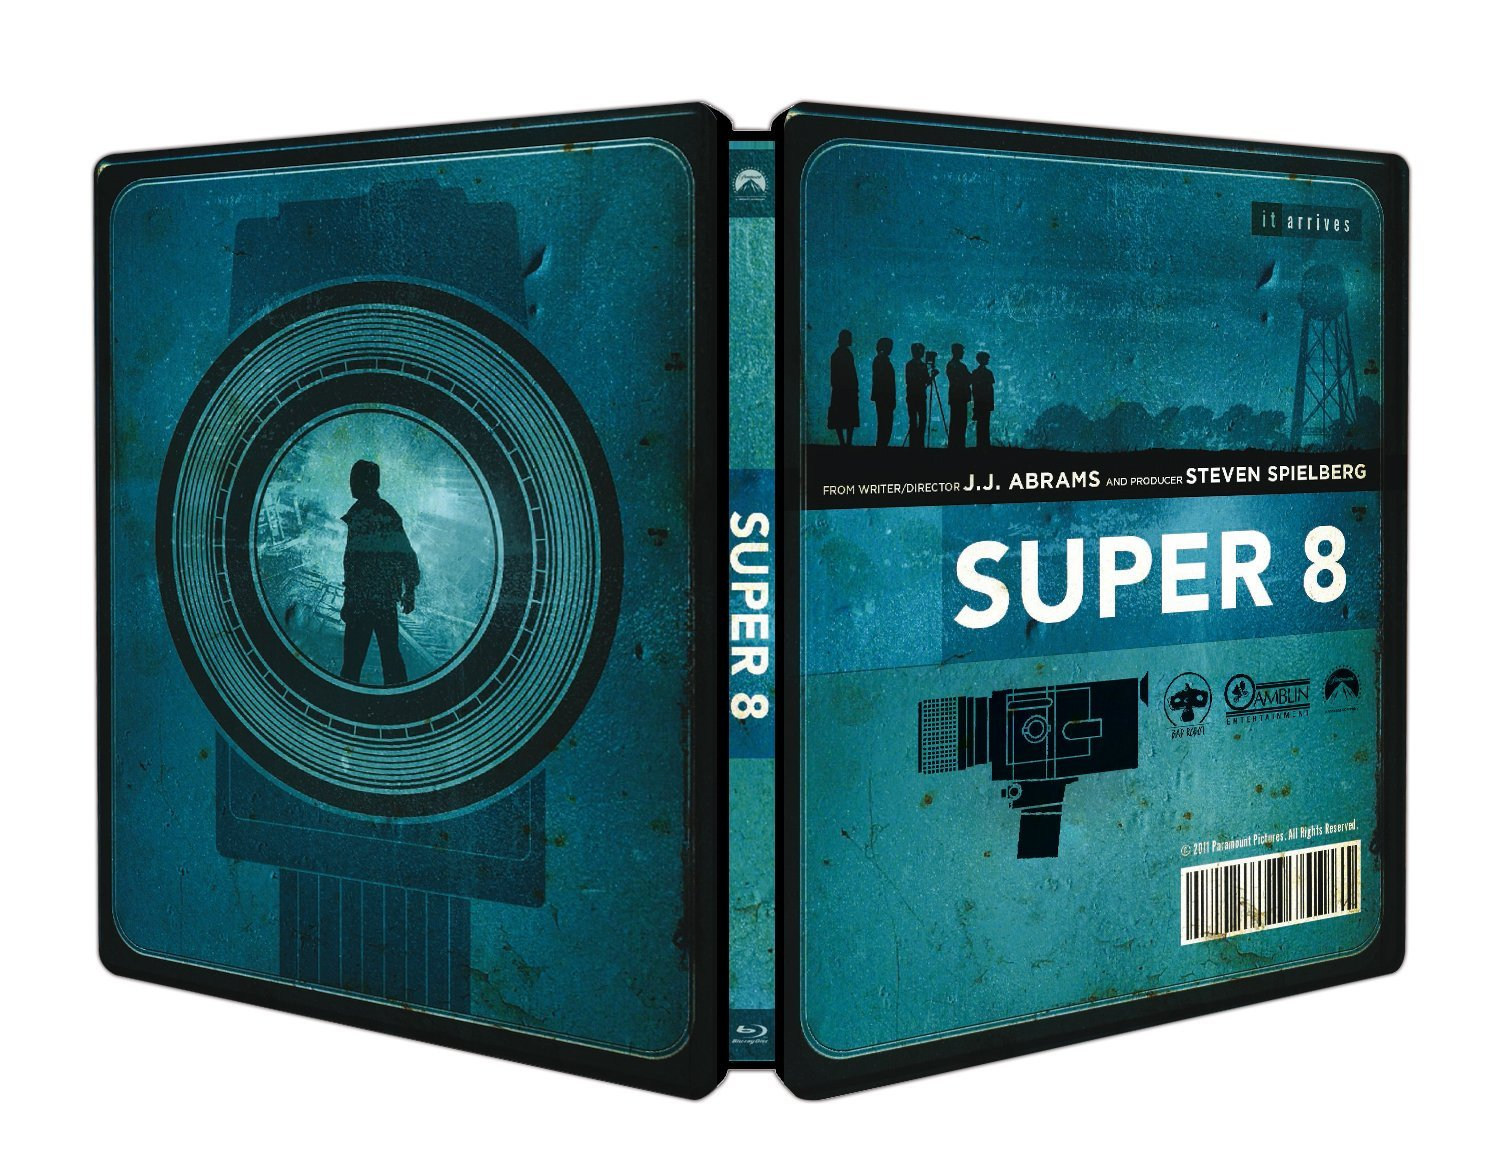 Super 8 film camera, a motion picture camera used to film Super 8mm motion picture format Super 8 ( film), a science-fiction film produced by Steven Spielberg Super 8 .